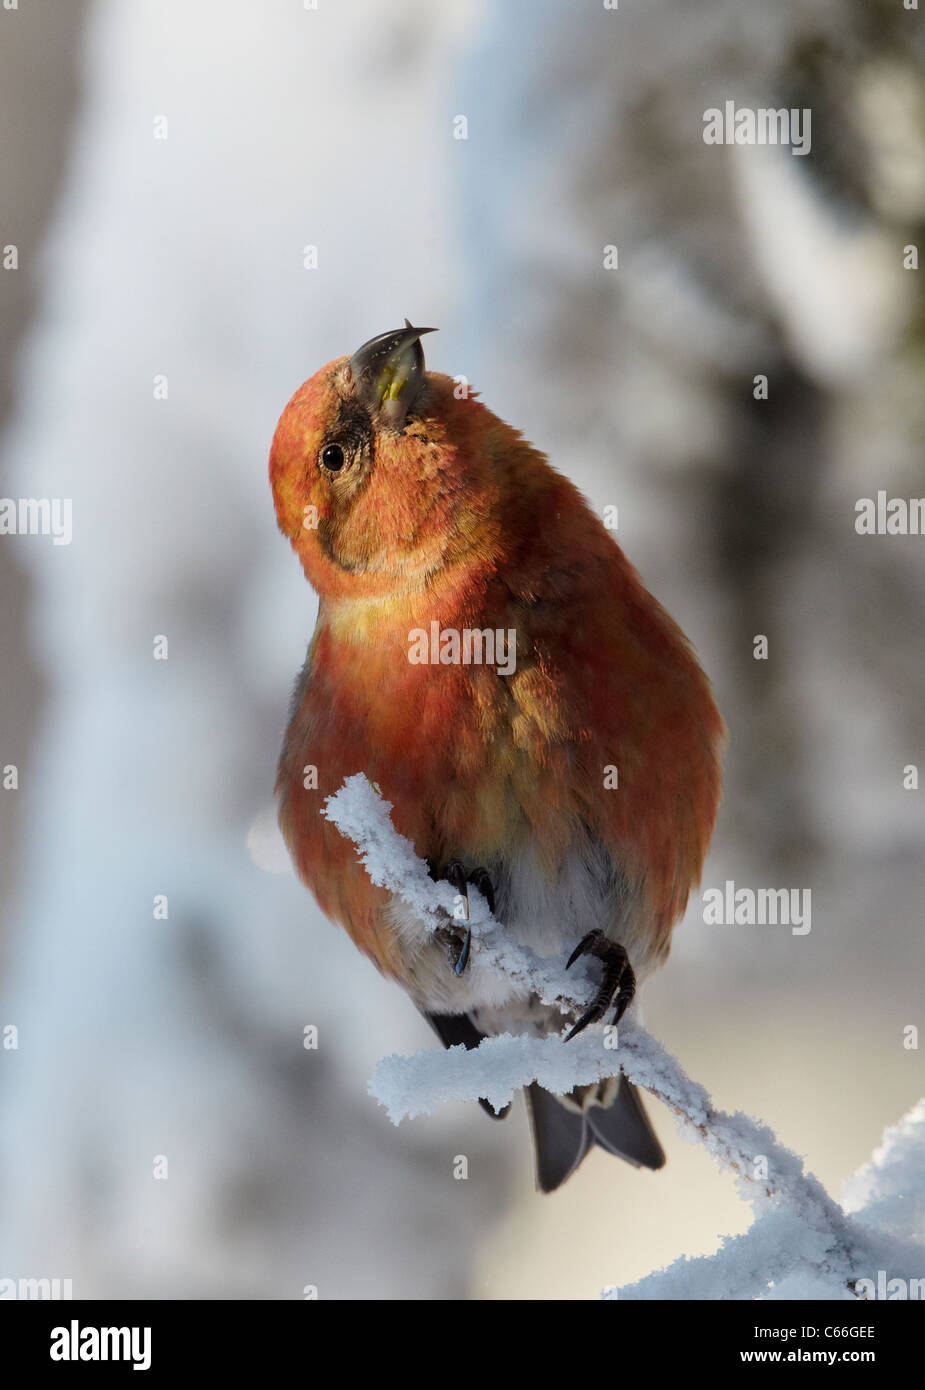 Common Crossbill, Red Crossbill (Loxia curvirostra). Male looking up while perched on a snowy twig. - Stock Image